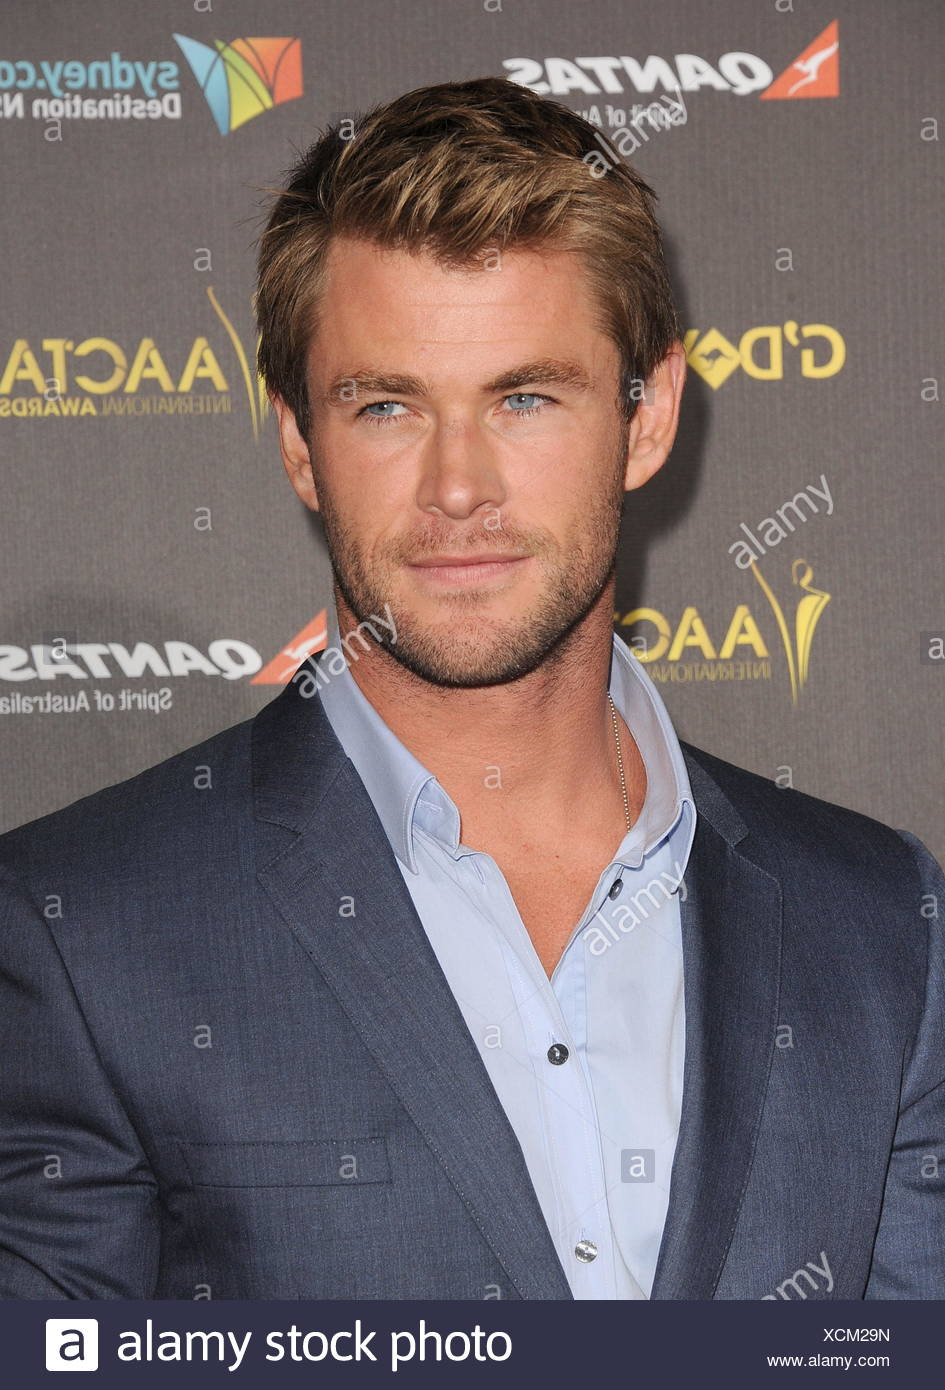 Chris Hemsworth attend the 2015 G'Day USA Gala featuring the AACTA International Awards presented by Qantas at Hollywood Palladium on January 31, 2015 in Los Angeles, California., Additional-Rights-Clearances-NA - Stock Image